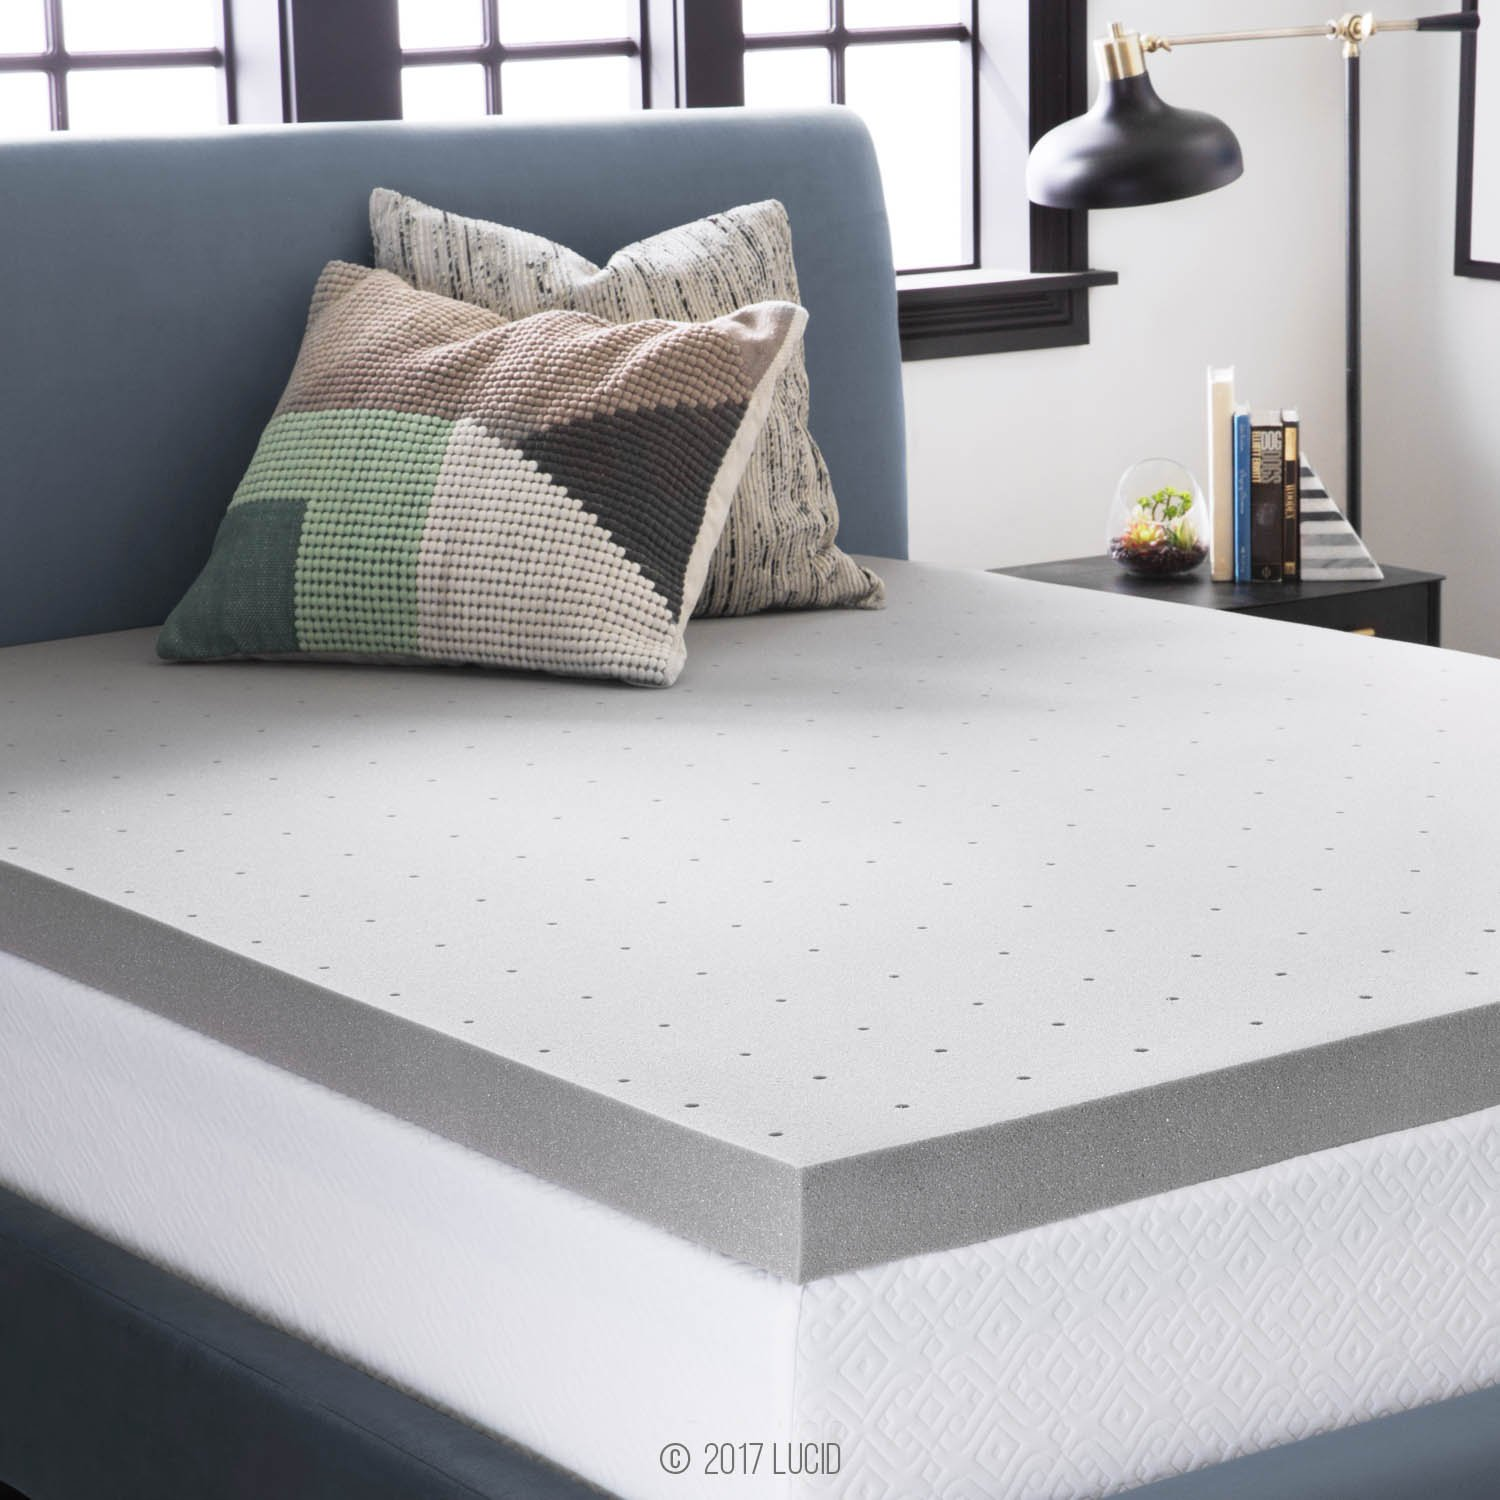 LUCID 3 Inch Bamboo Charcoal Memory Foam Mattress Topper - Queen by LUCID